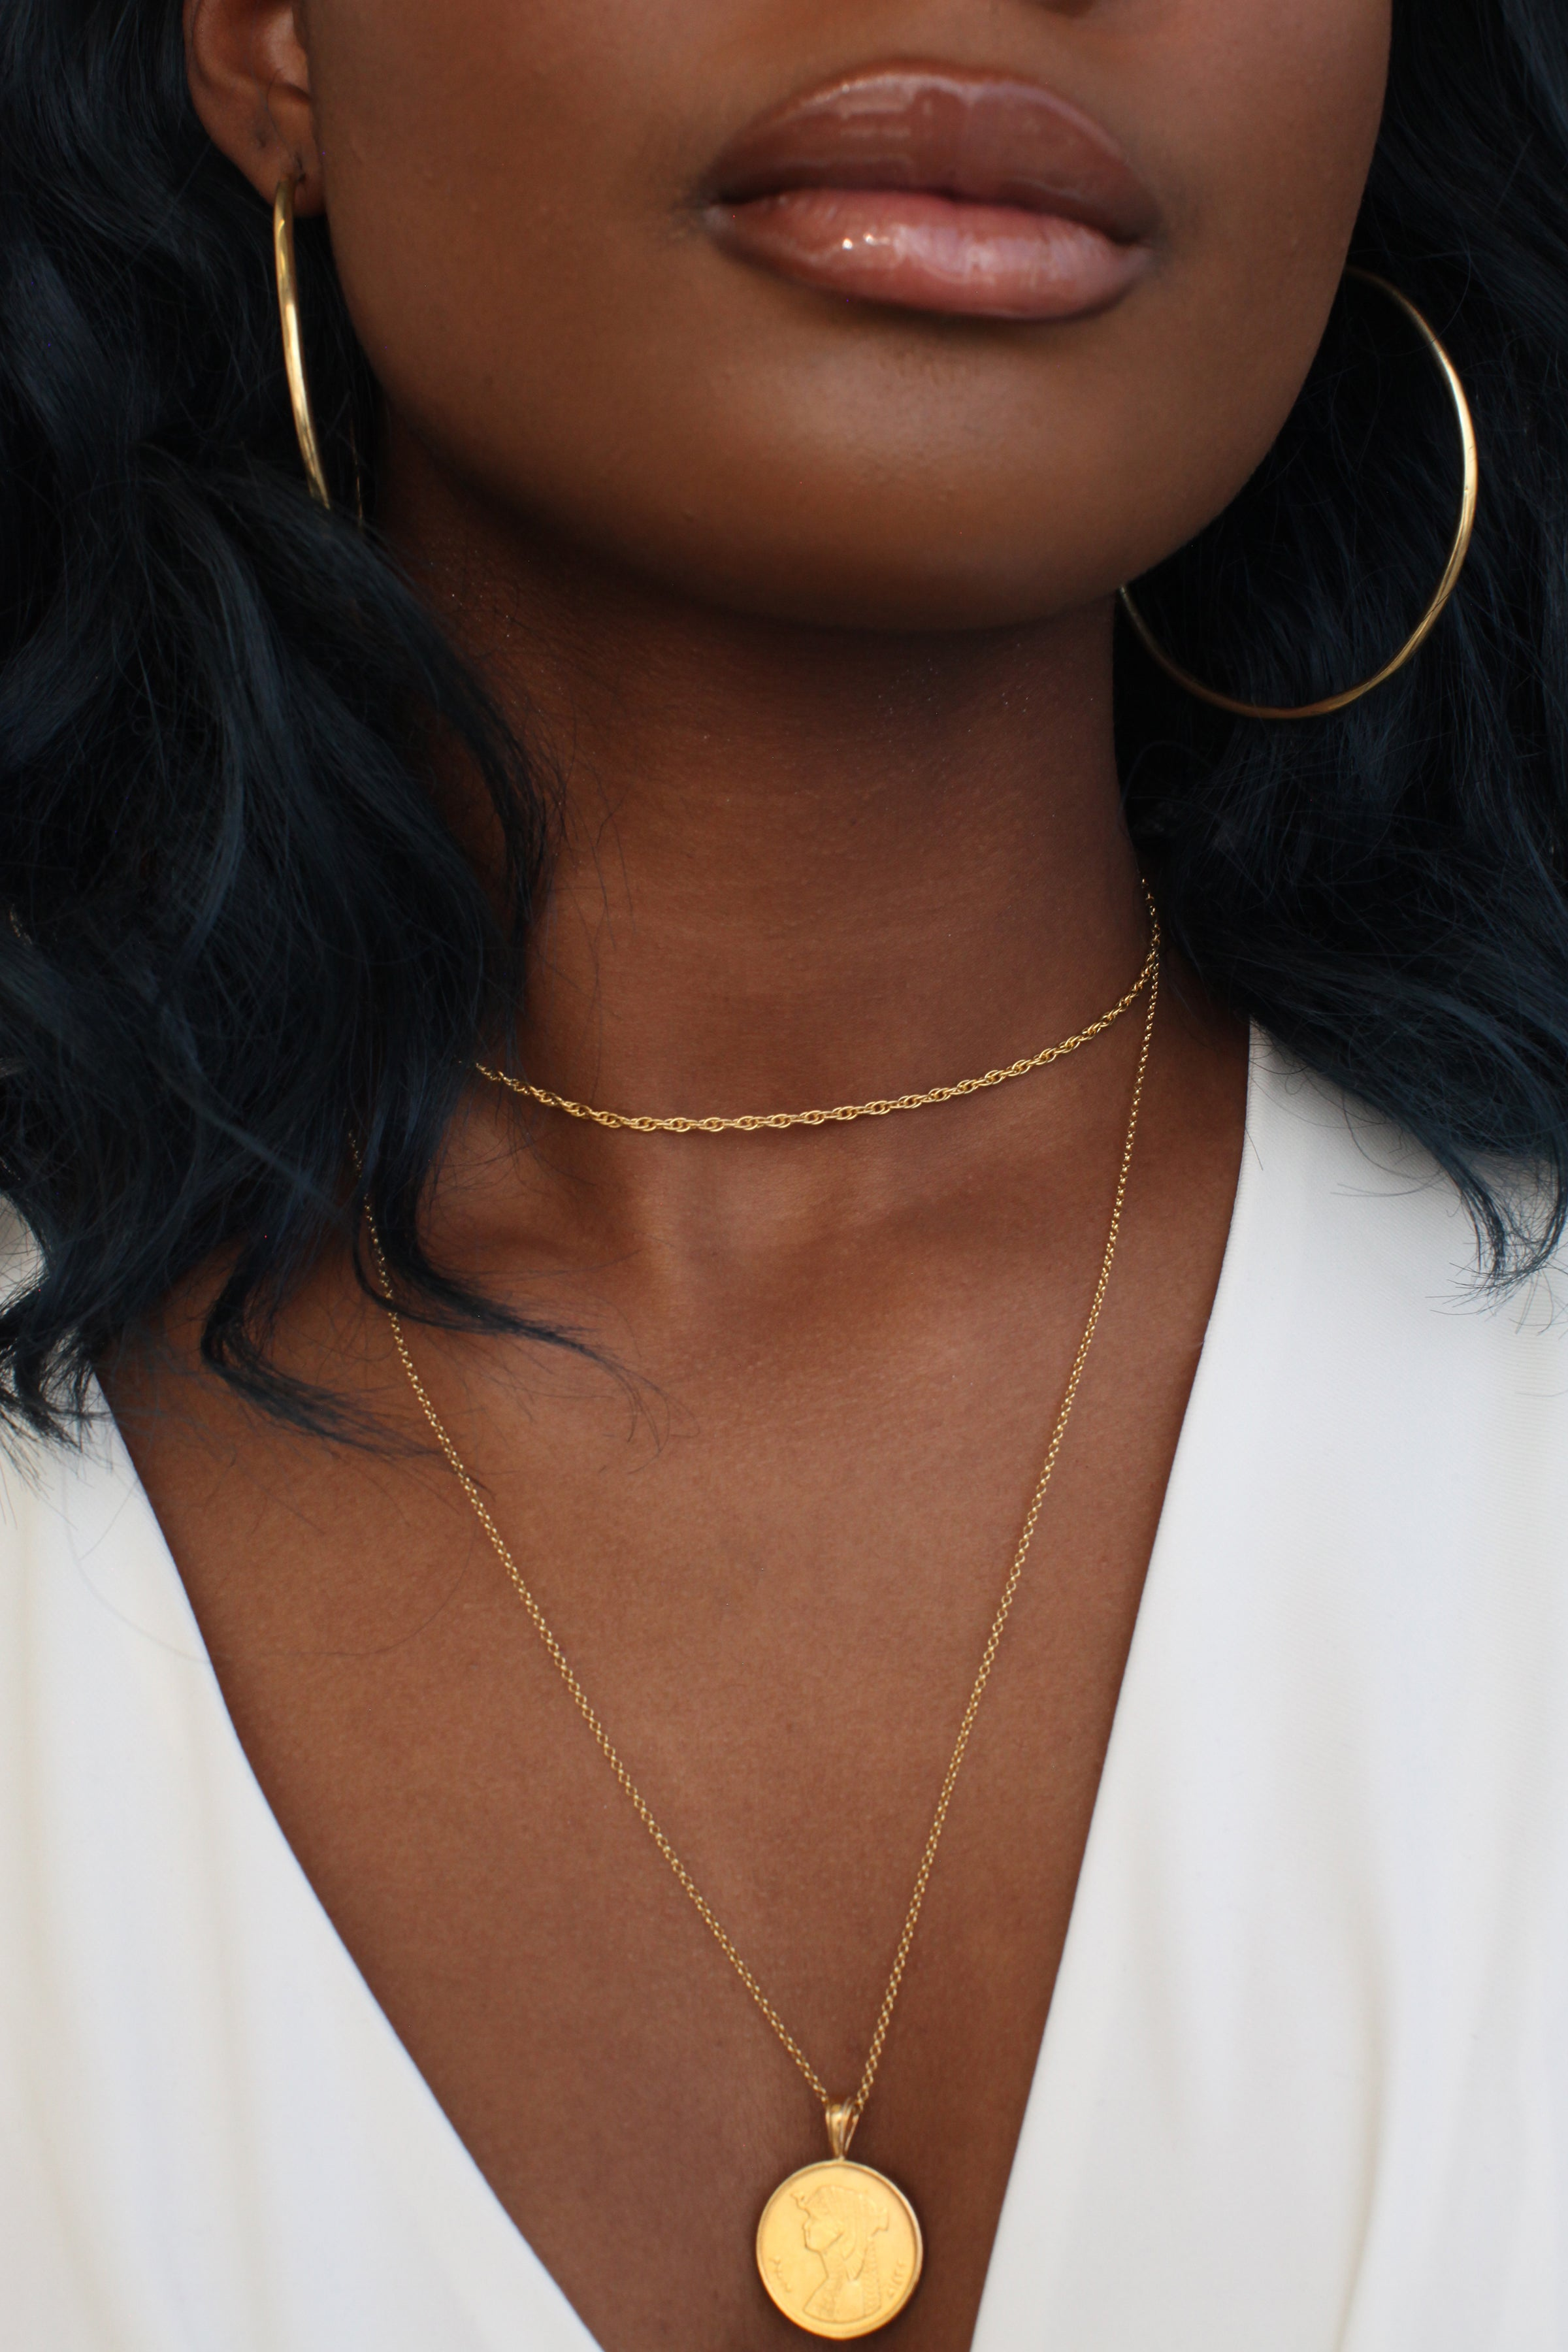 THE SINGLE COIN Necklace Stack I